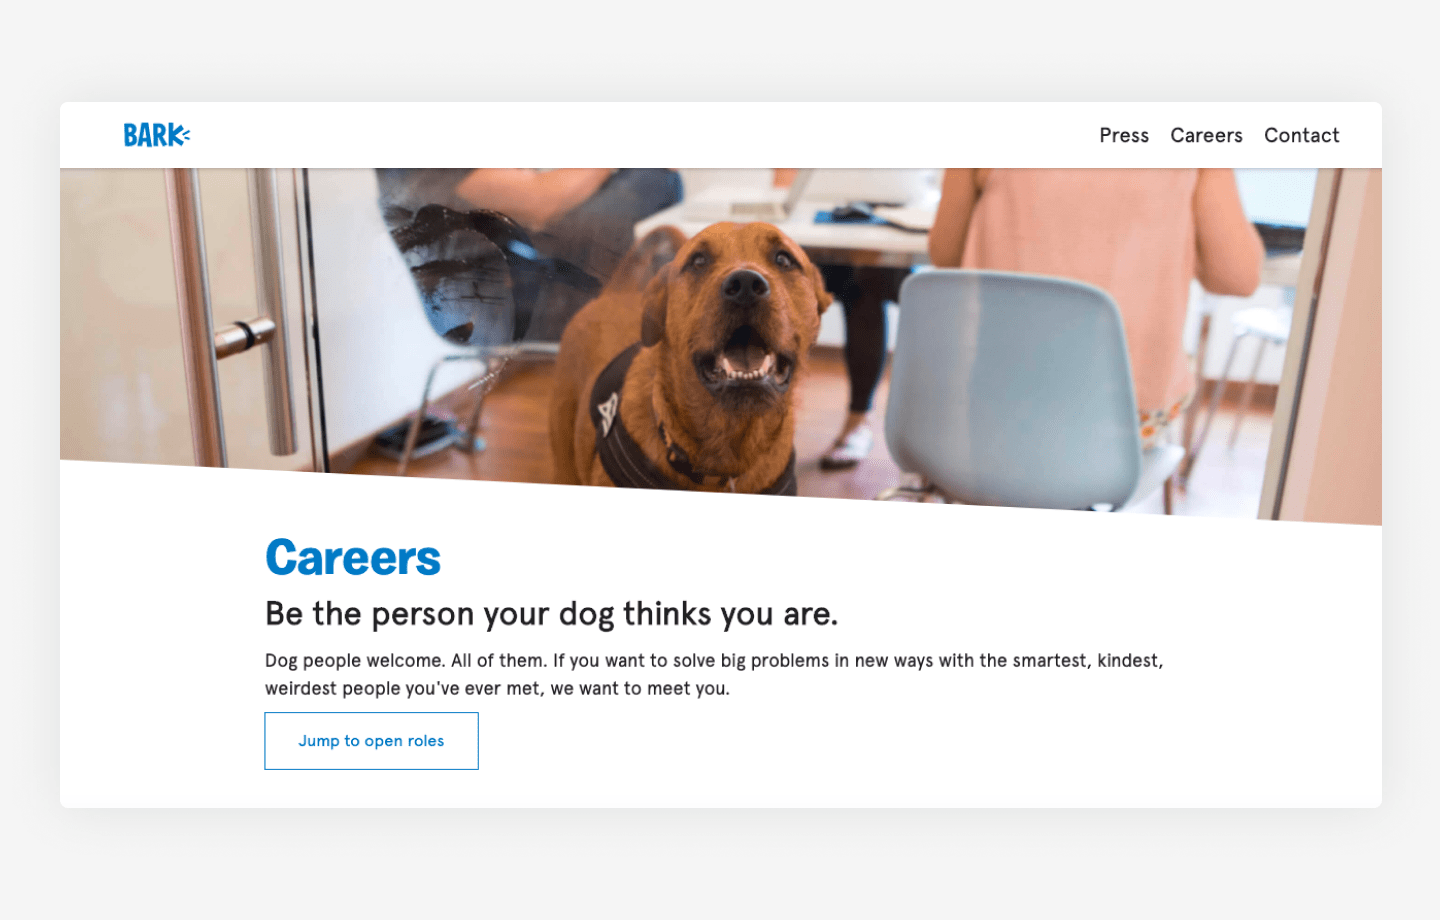 Bark's website career page example